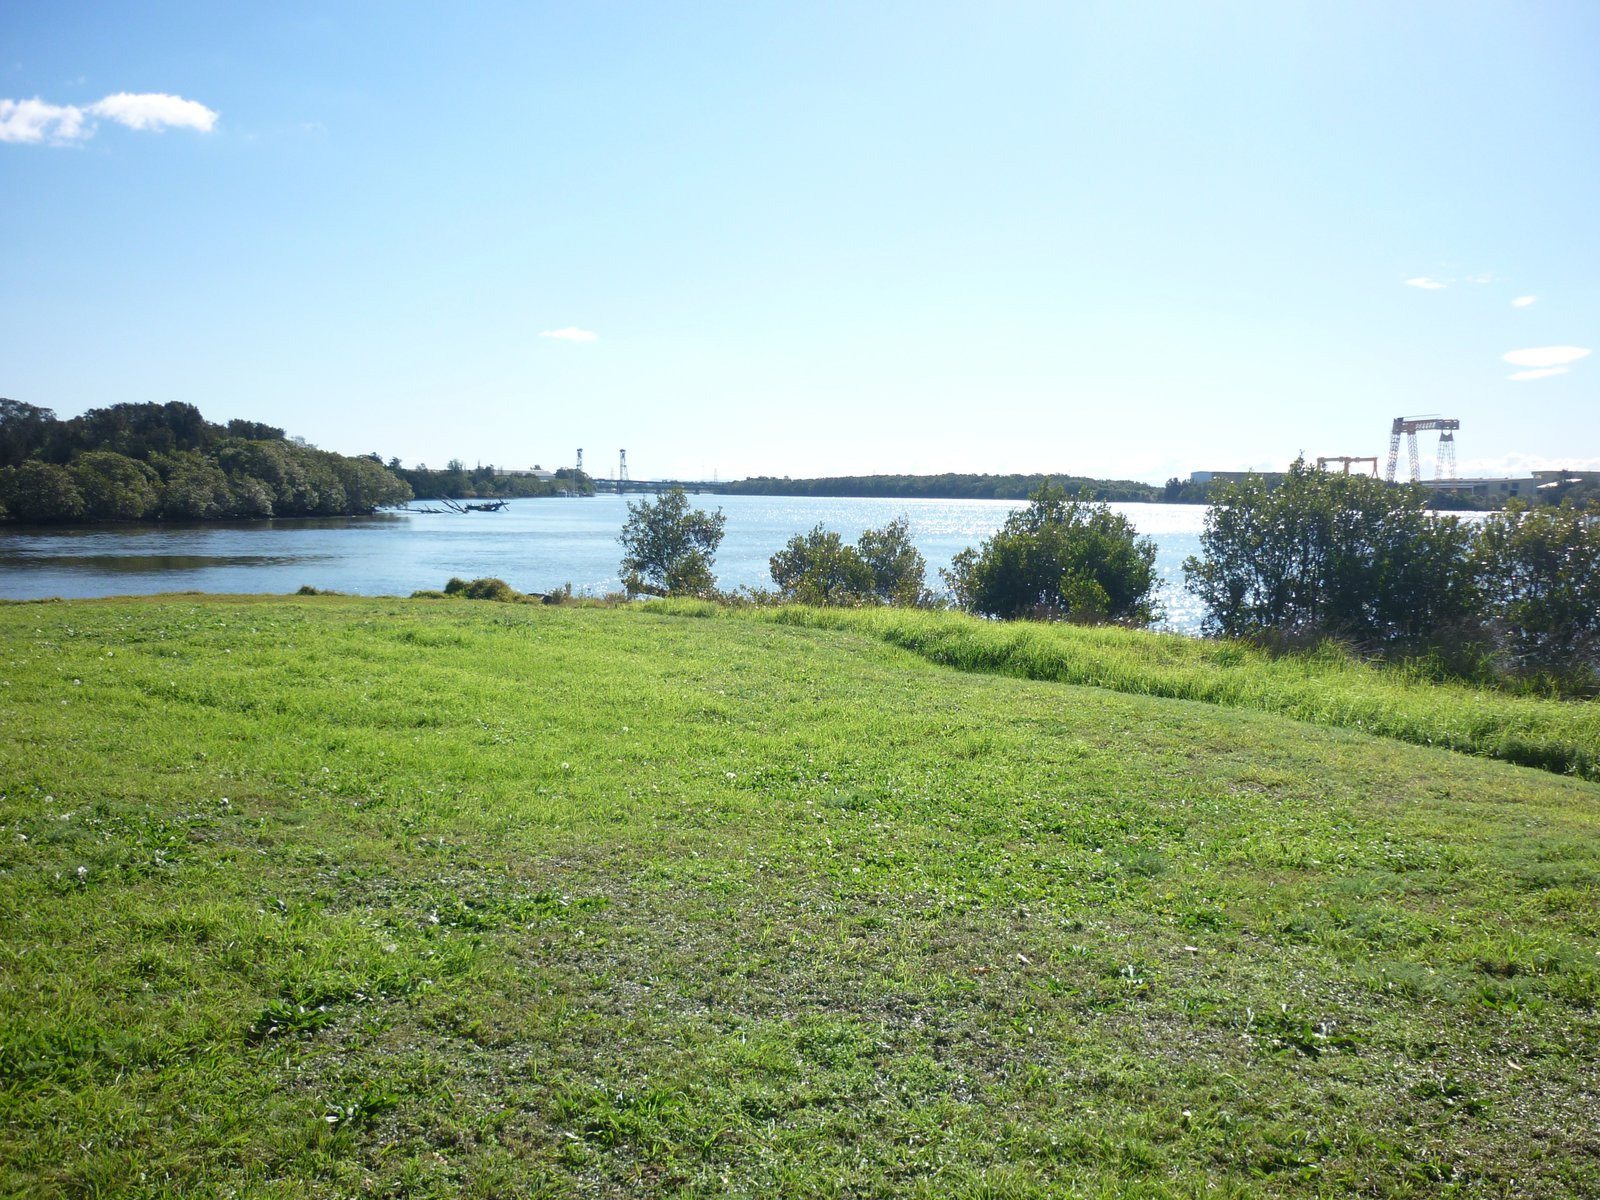 Scotts Point Ash Island, view upriver